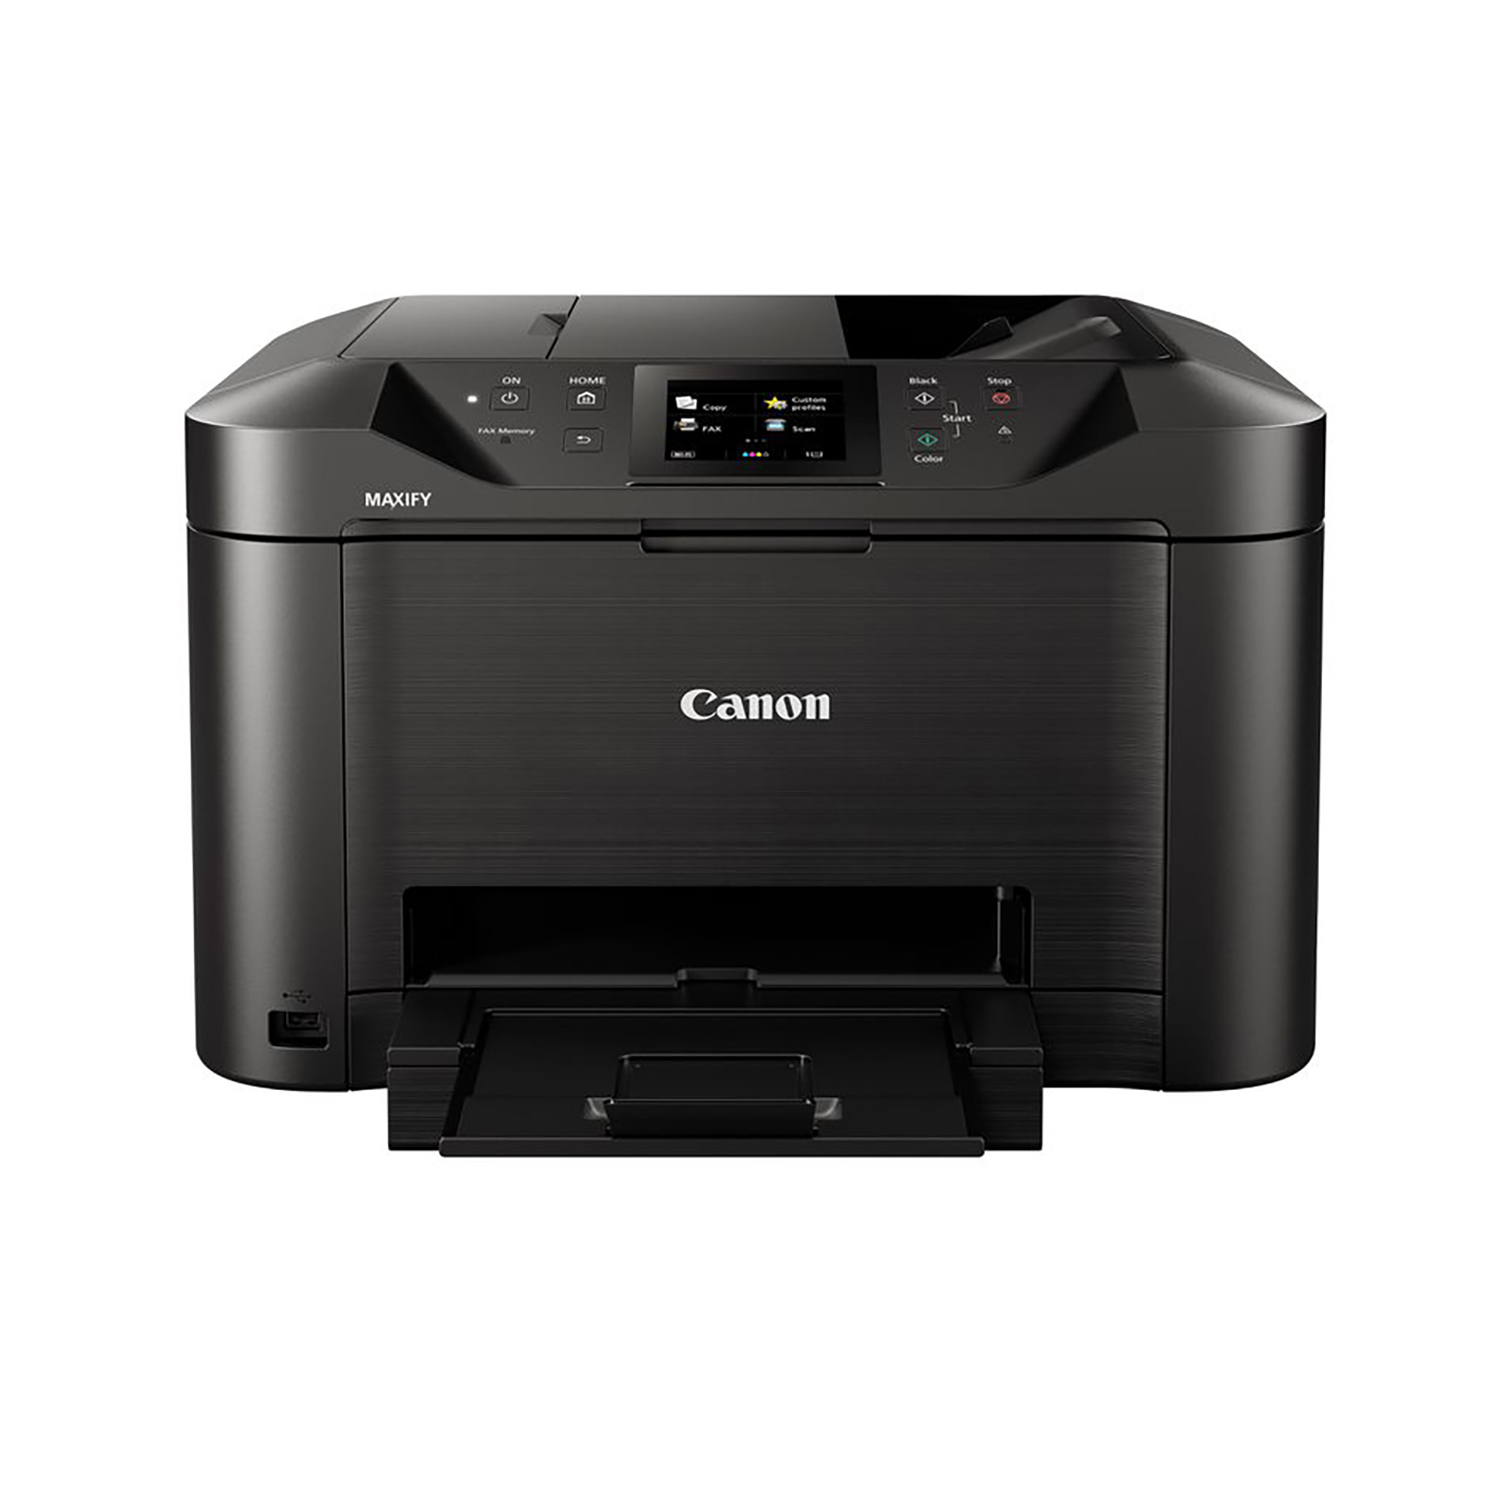 Multi function printers Canon Maxify MB5155 Multifunction Inkjet A4 Printer Black Ref 0960C028